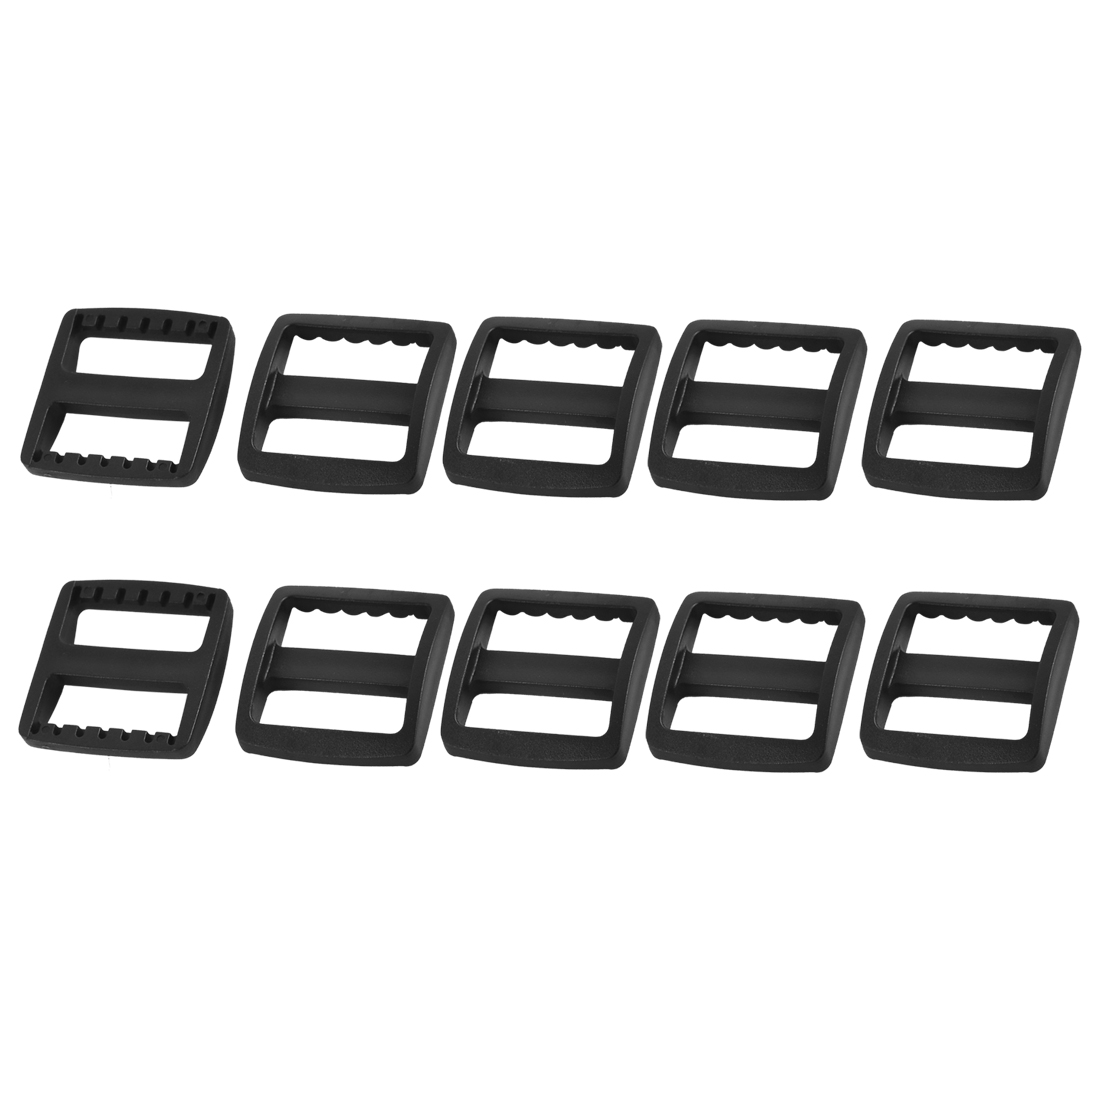 Suitcase Bag Webbing Strap Plastic Rectangle Connecting Tri Glide Buckles Black 10pcs